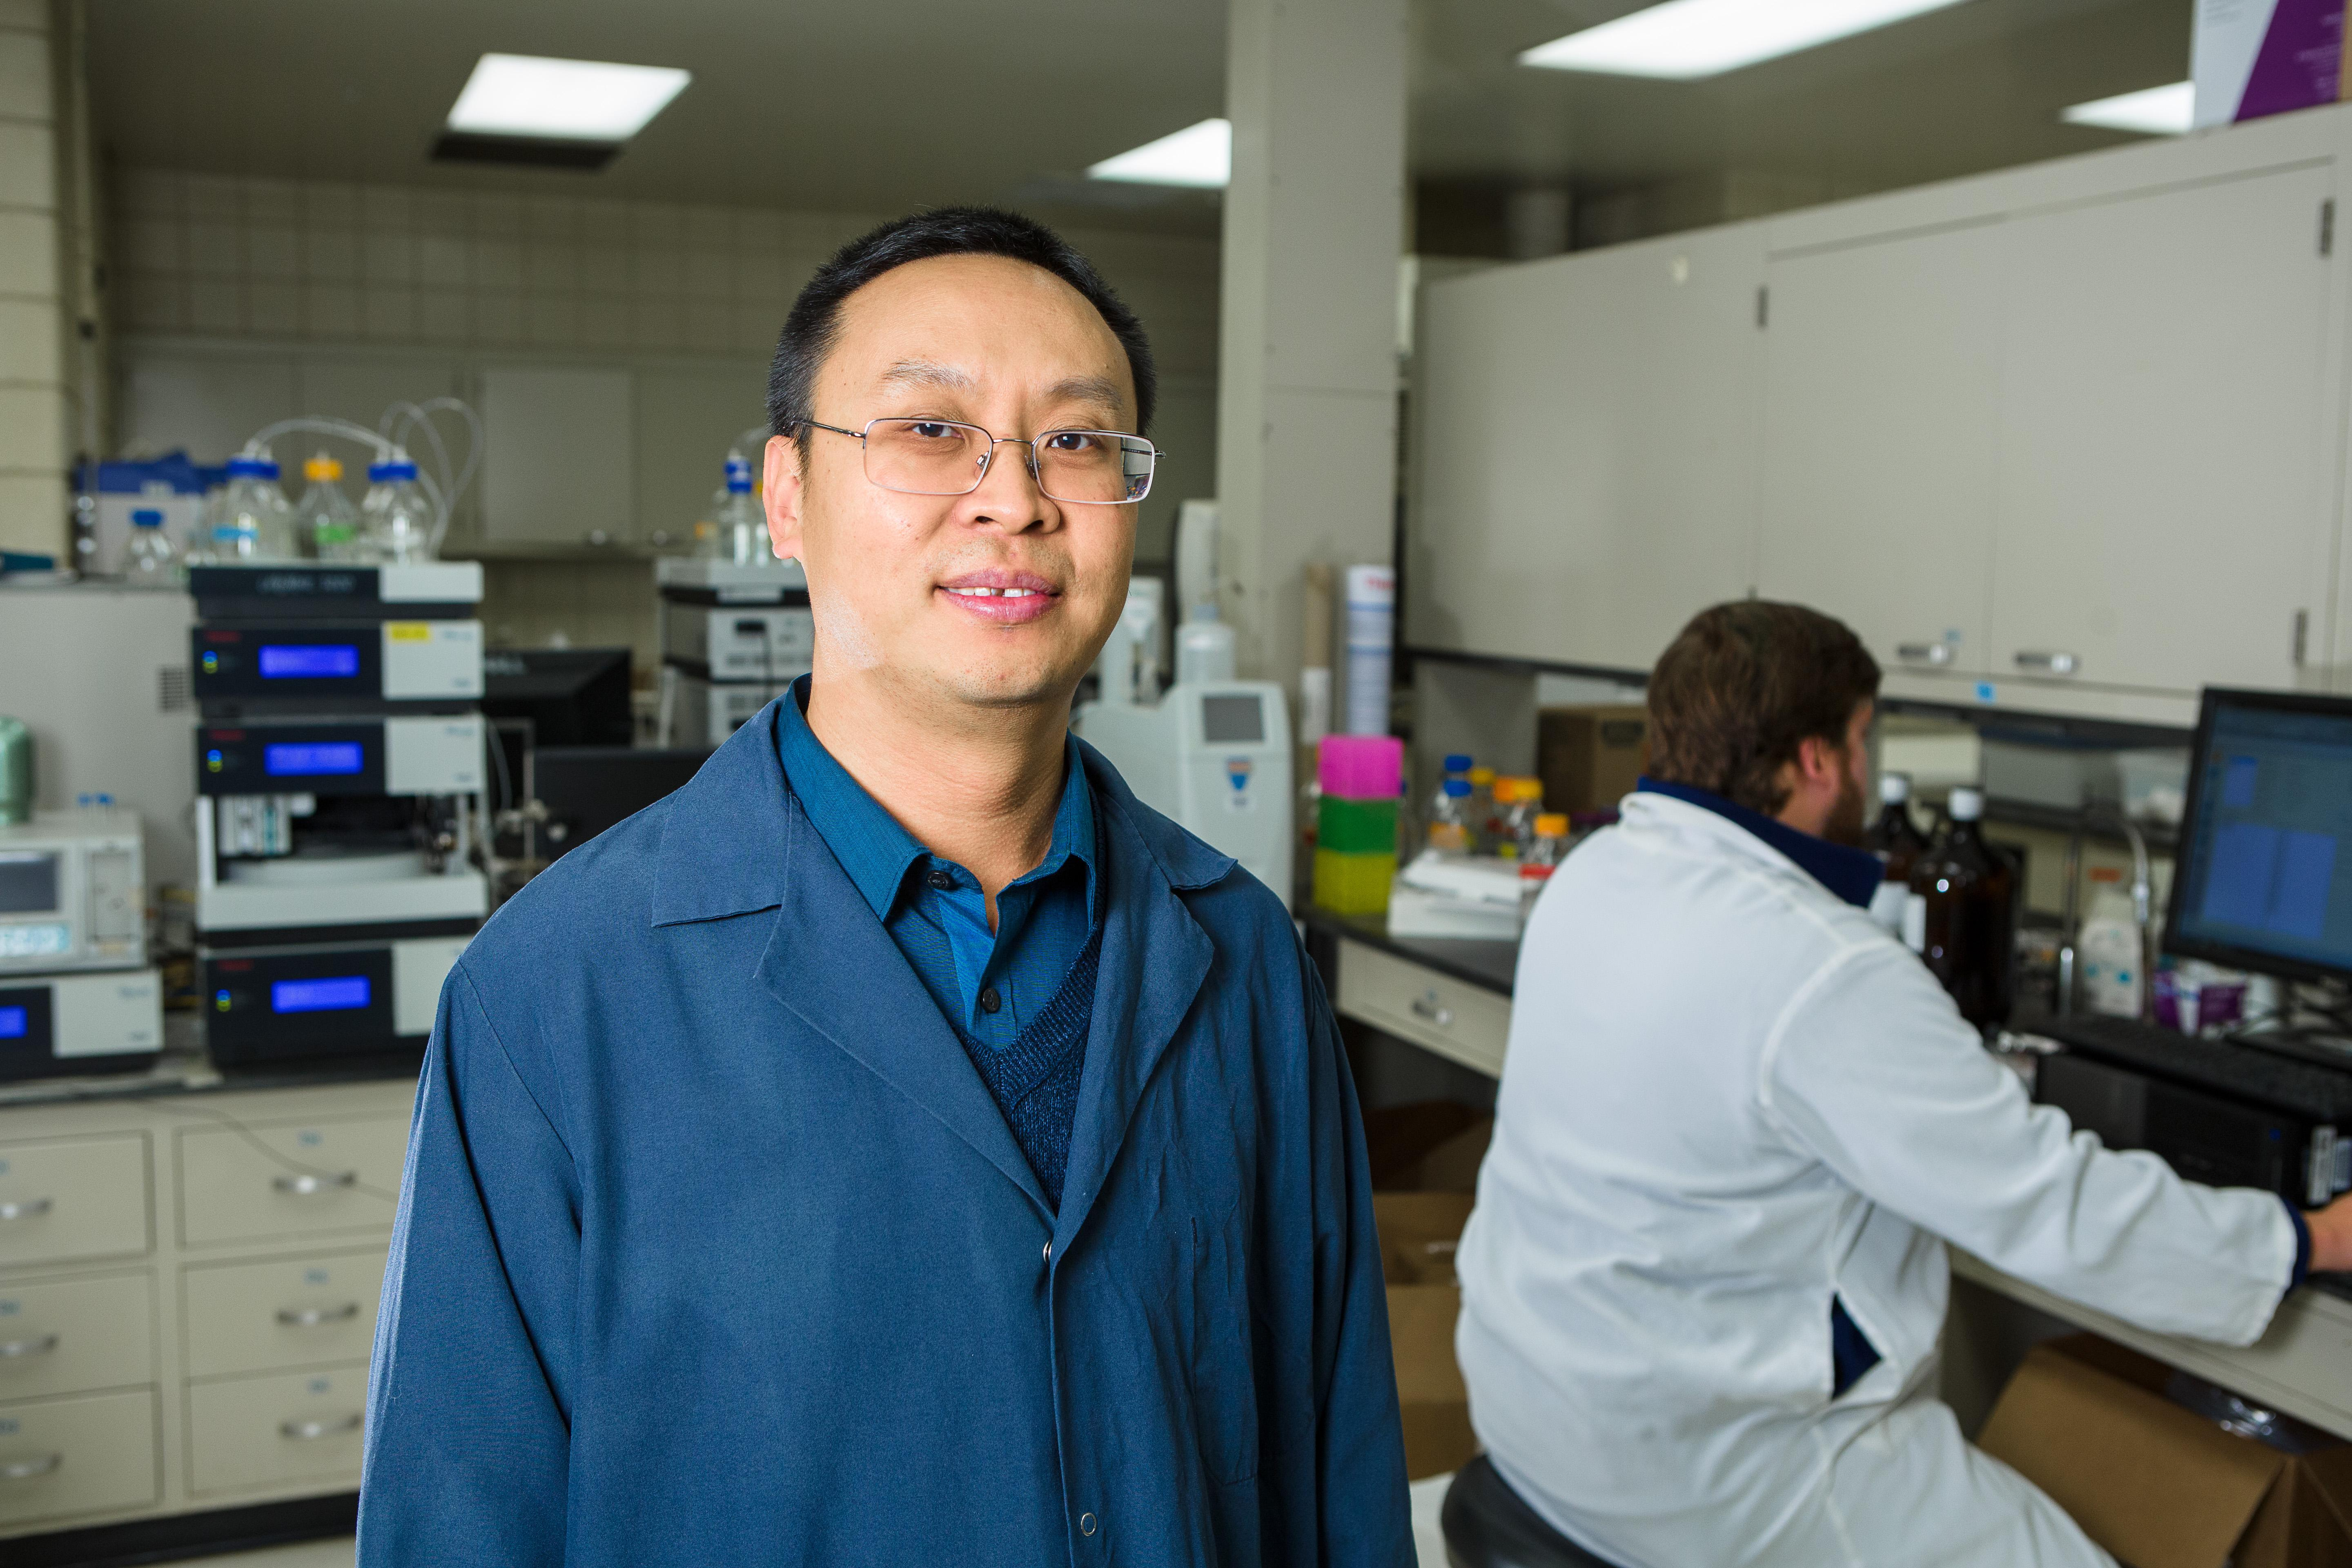 Jian Shi is the lead researcher on the grant studying how to remove sulfur from pine byproducts used in biofuel production. Photo by Matt Barton, UK agricultural communications.